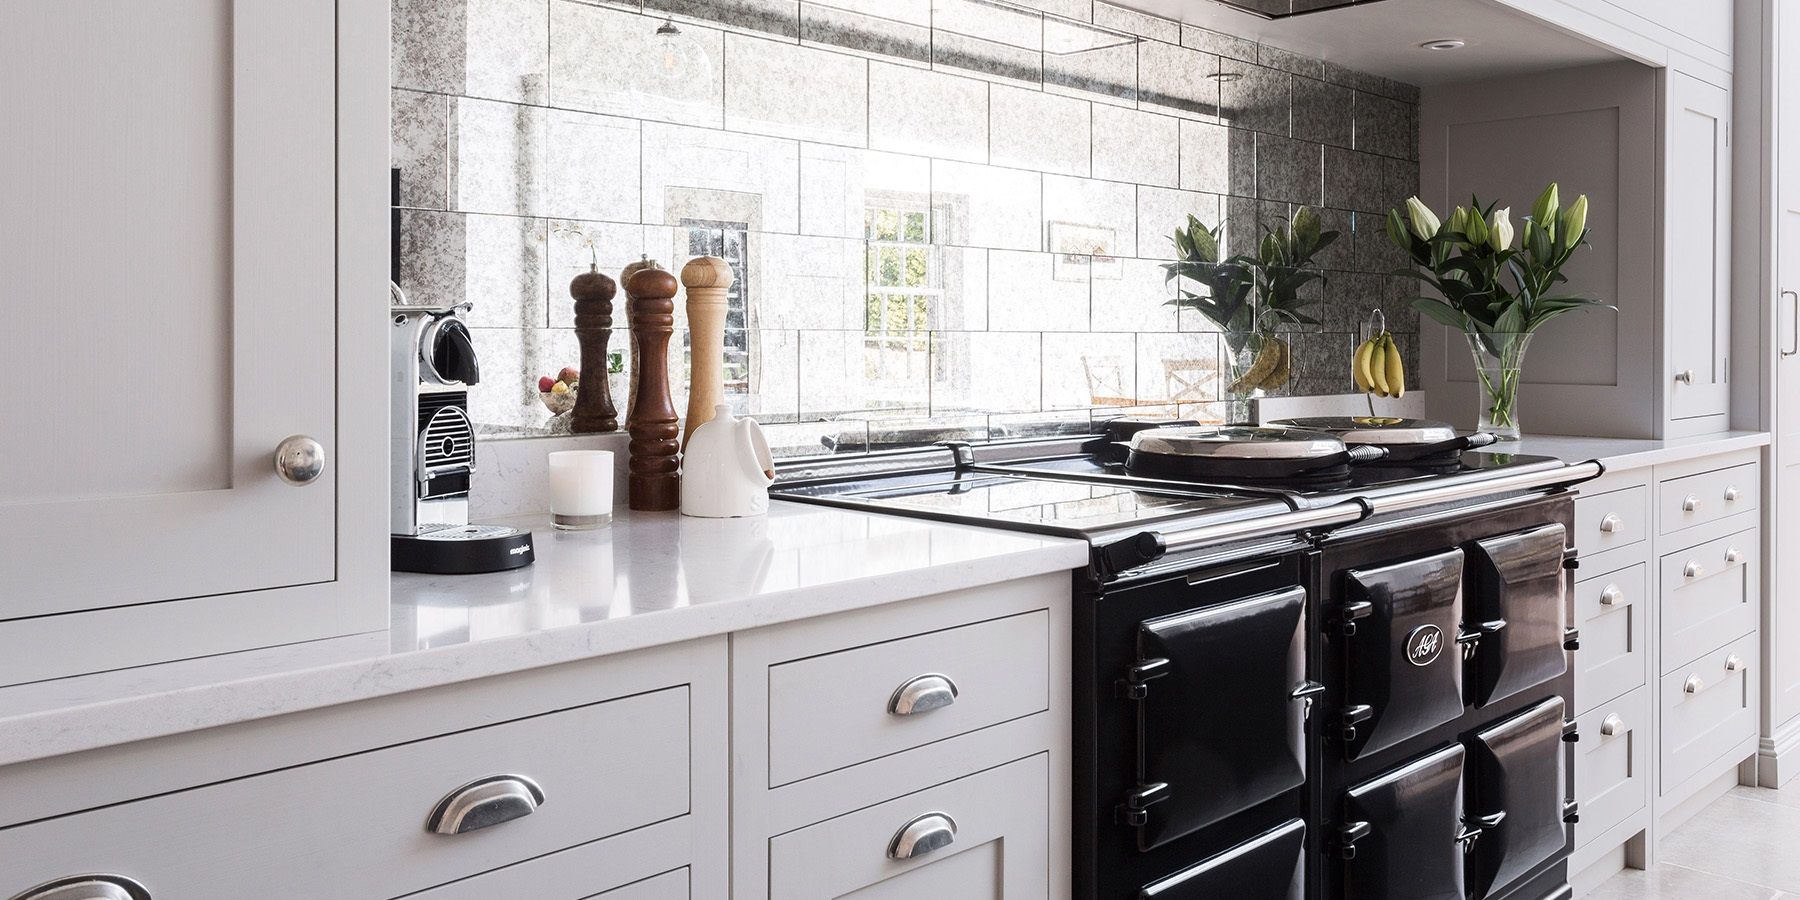 Luxury Handmade Shaker Kitchen & AGA - Burlanes handmade Wellsdown kitchen with beautiful mirrored tile splashback by Ca'Pietra, and AGA Total Control.